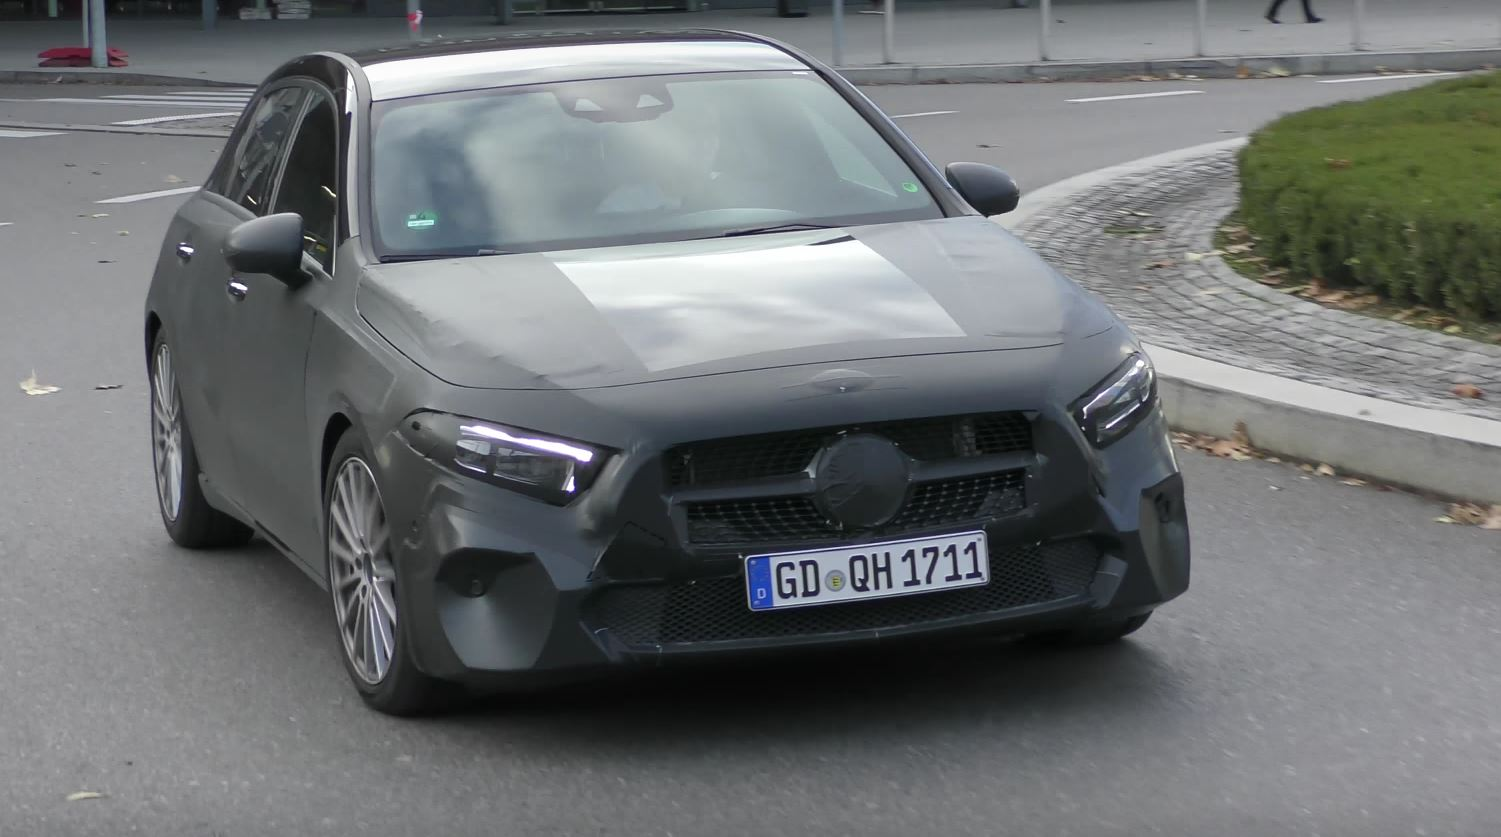 Mercedes CLS Teaser Vid Shows Curvaceous Body Ahead Of LA Reveal